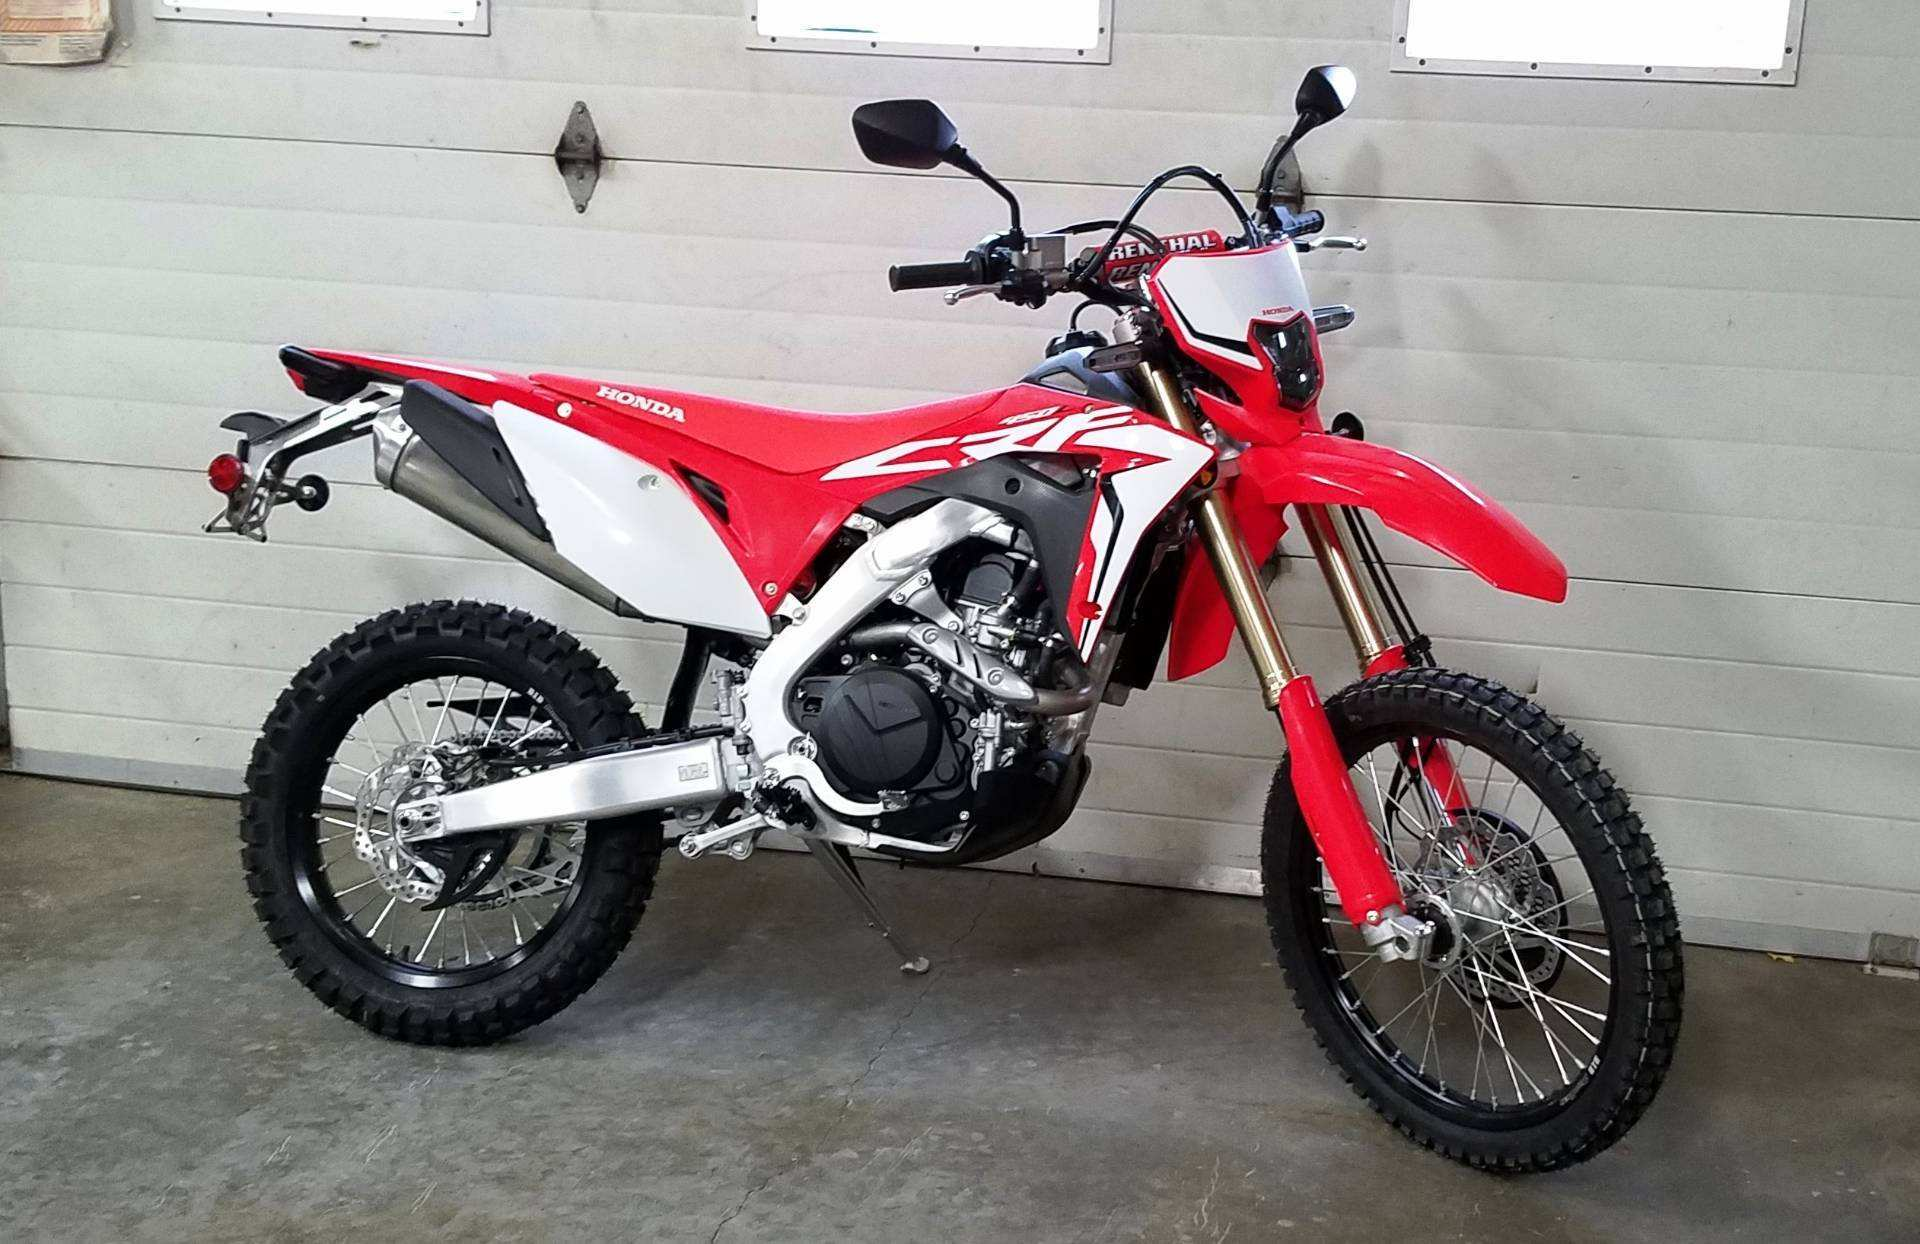 59 All New 2019 Honda Crf450L Style